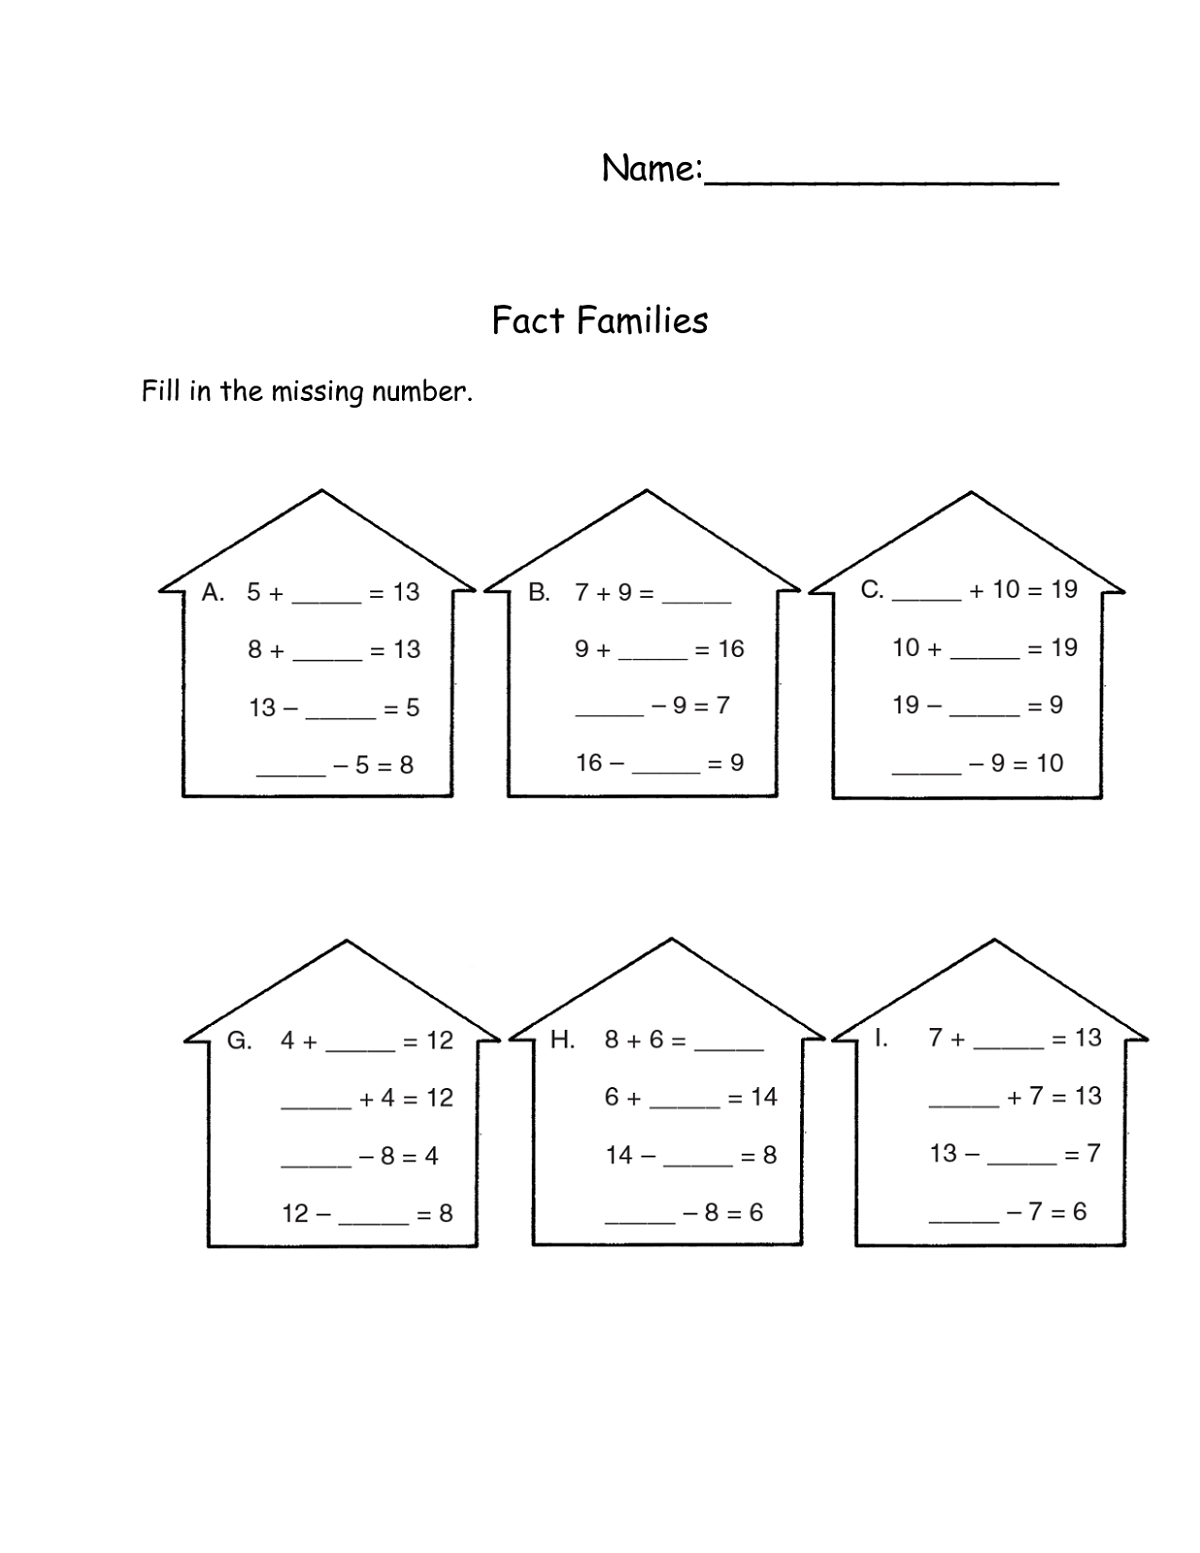 Fact Families Worksheet For Elementary School In